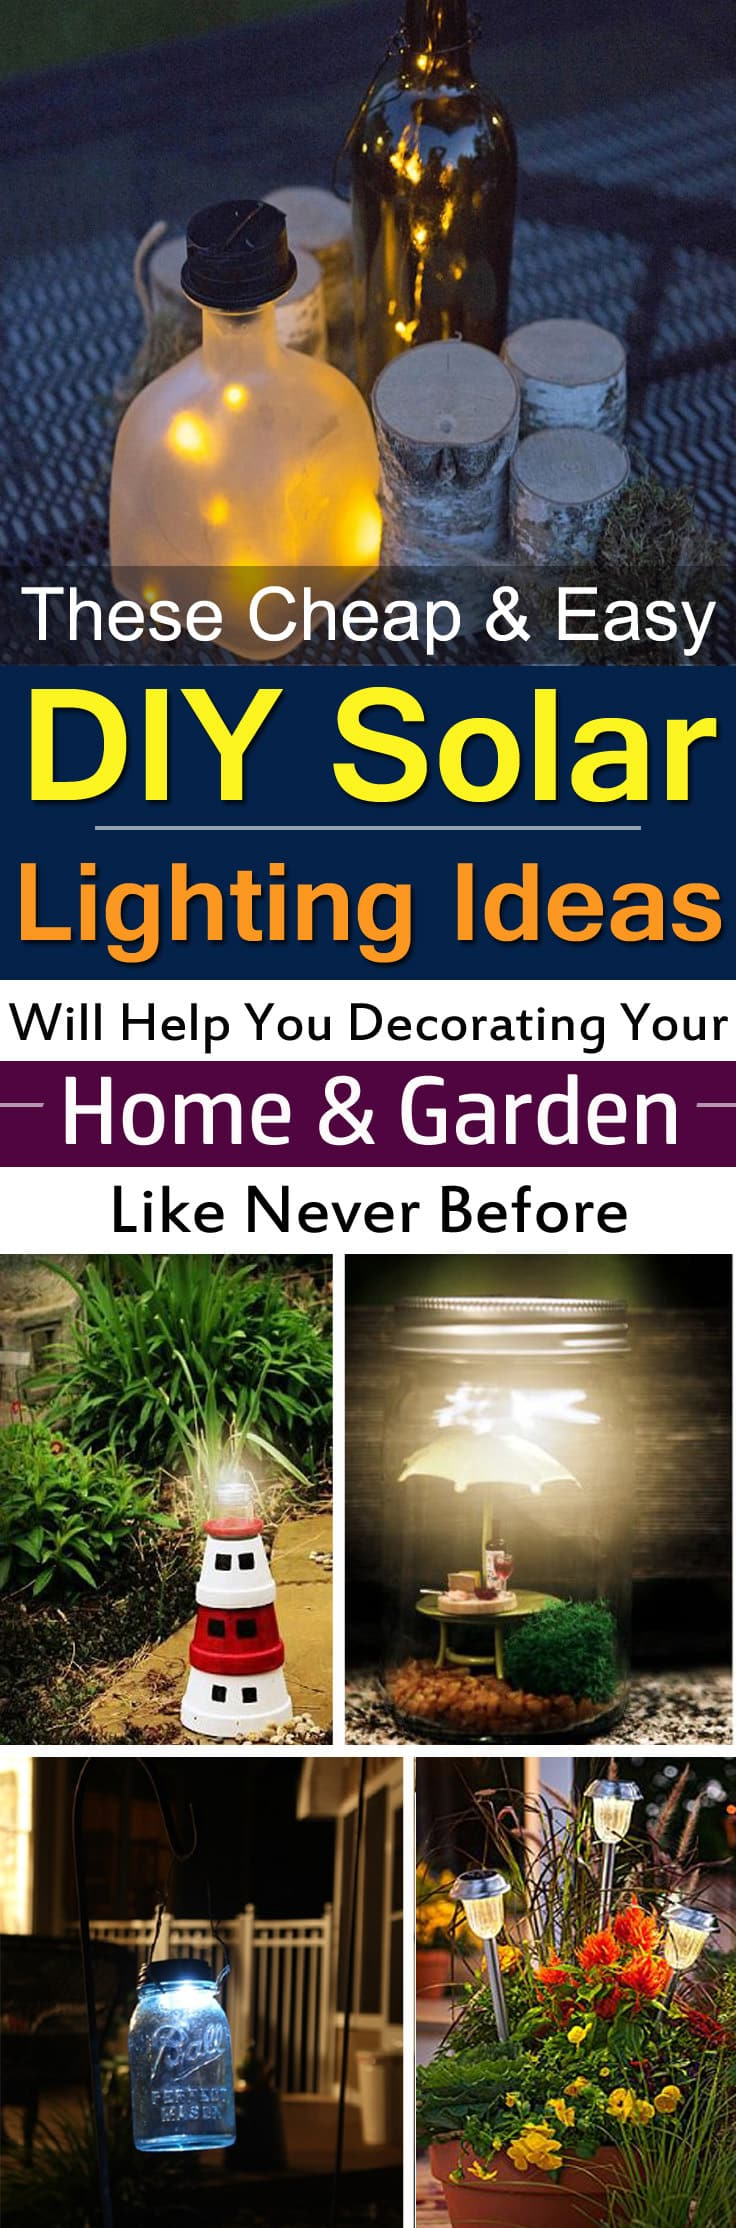 28 Cheap Easy Diy Solar Light Projects For Home Garden Balcony